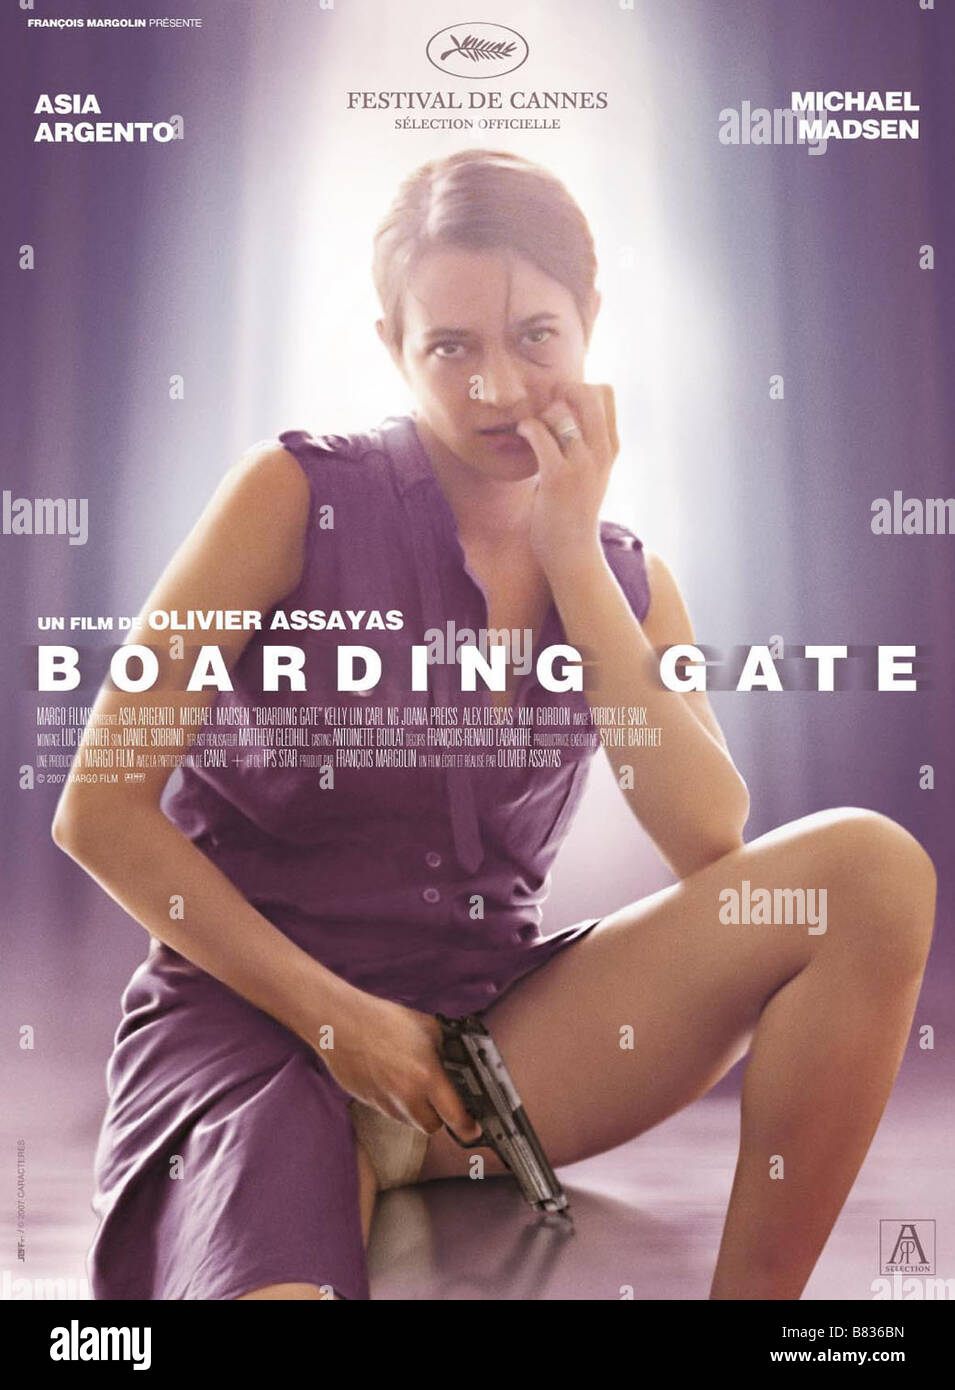 Asia Argento Boarding Gate - 2007 HD